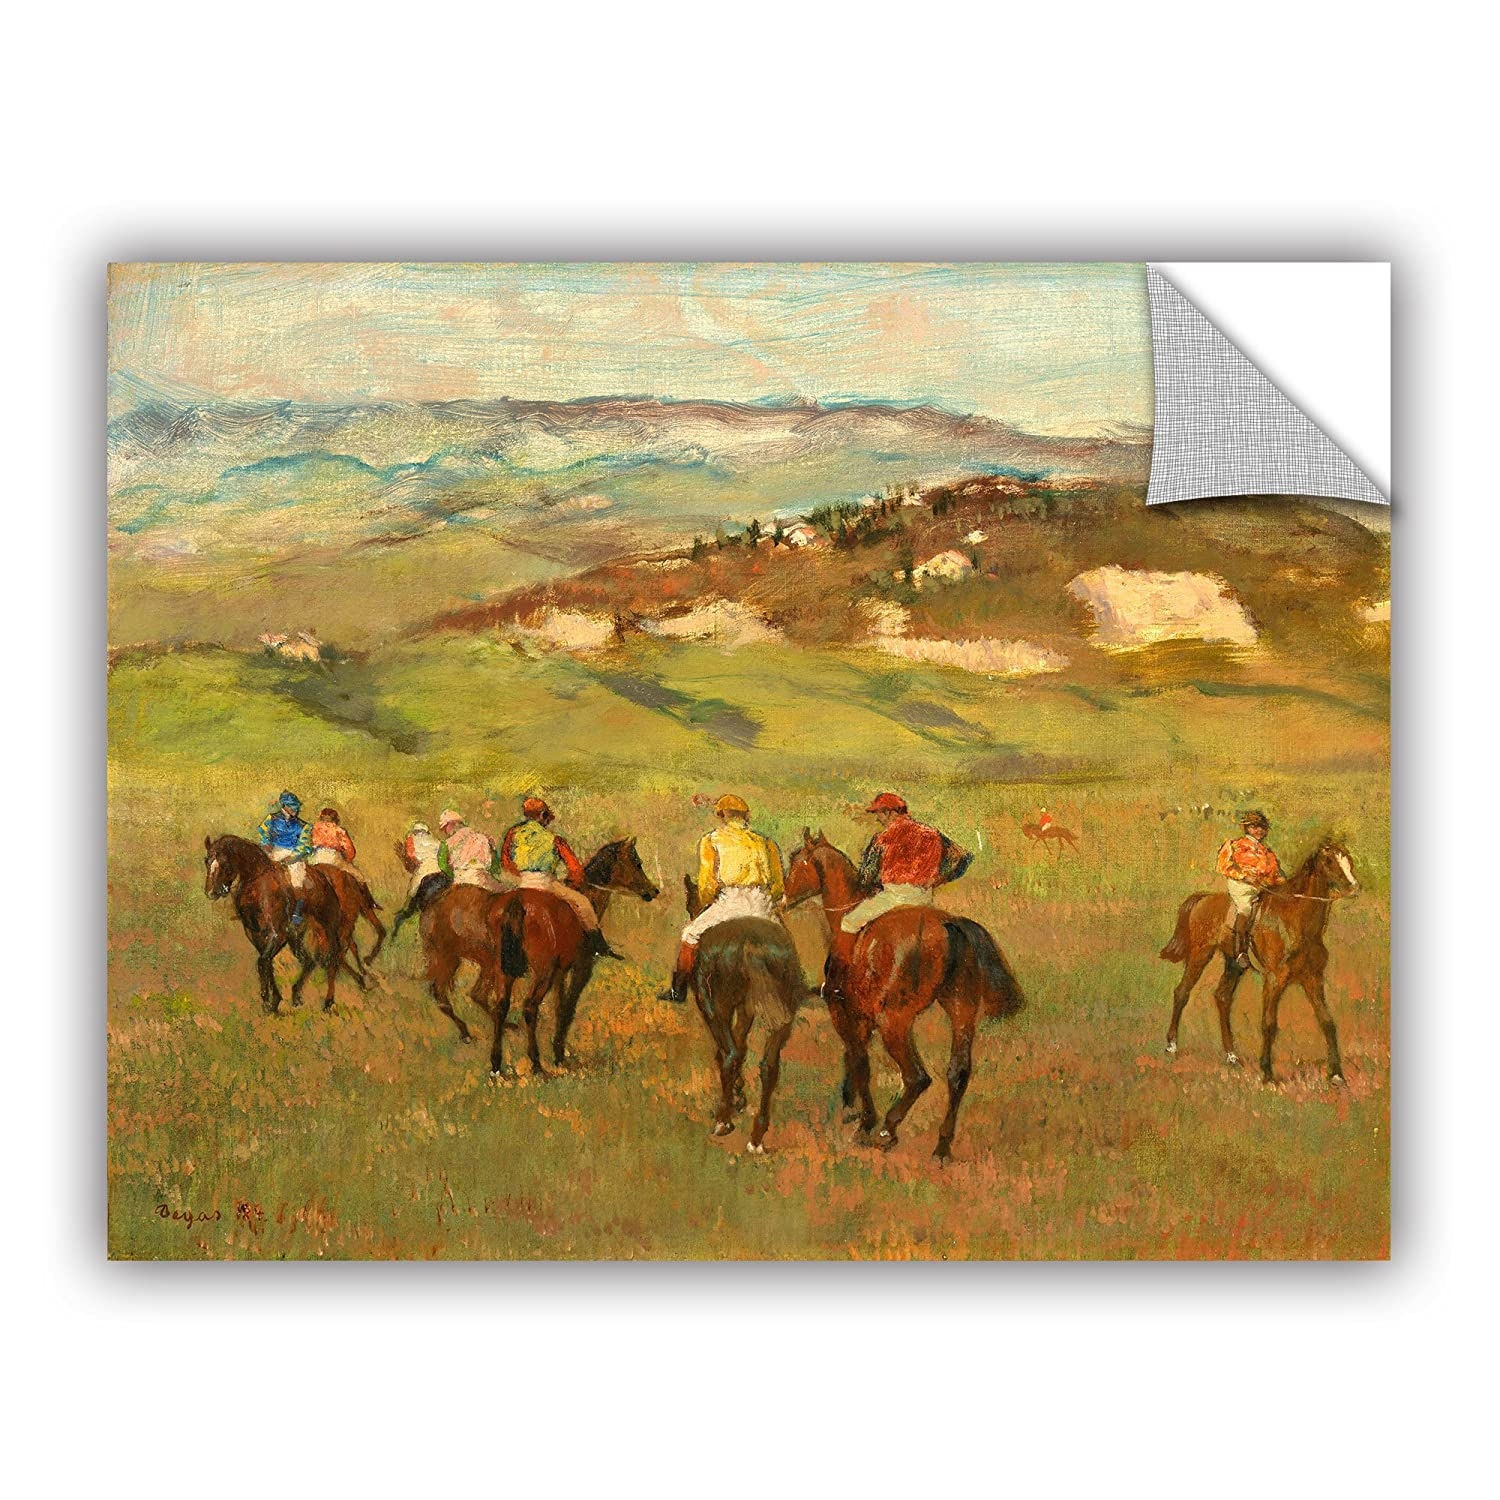 14 x 18 ArtWall Edgar Degass Jockeys on Horseback Before Distant Hills Art Appeelz Removable Wall Art Graphic